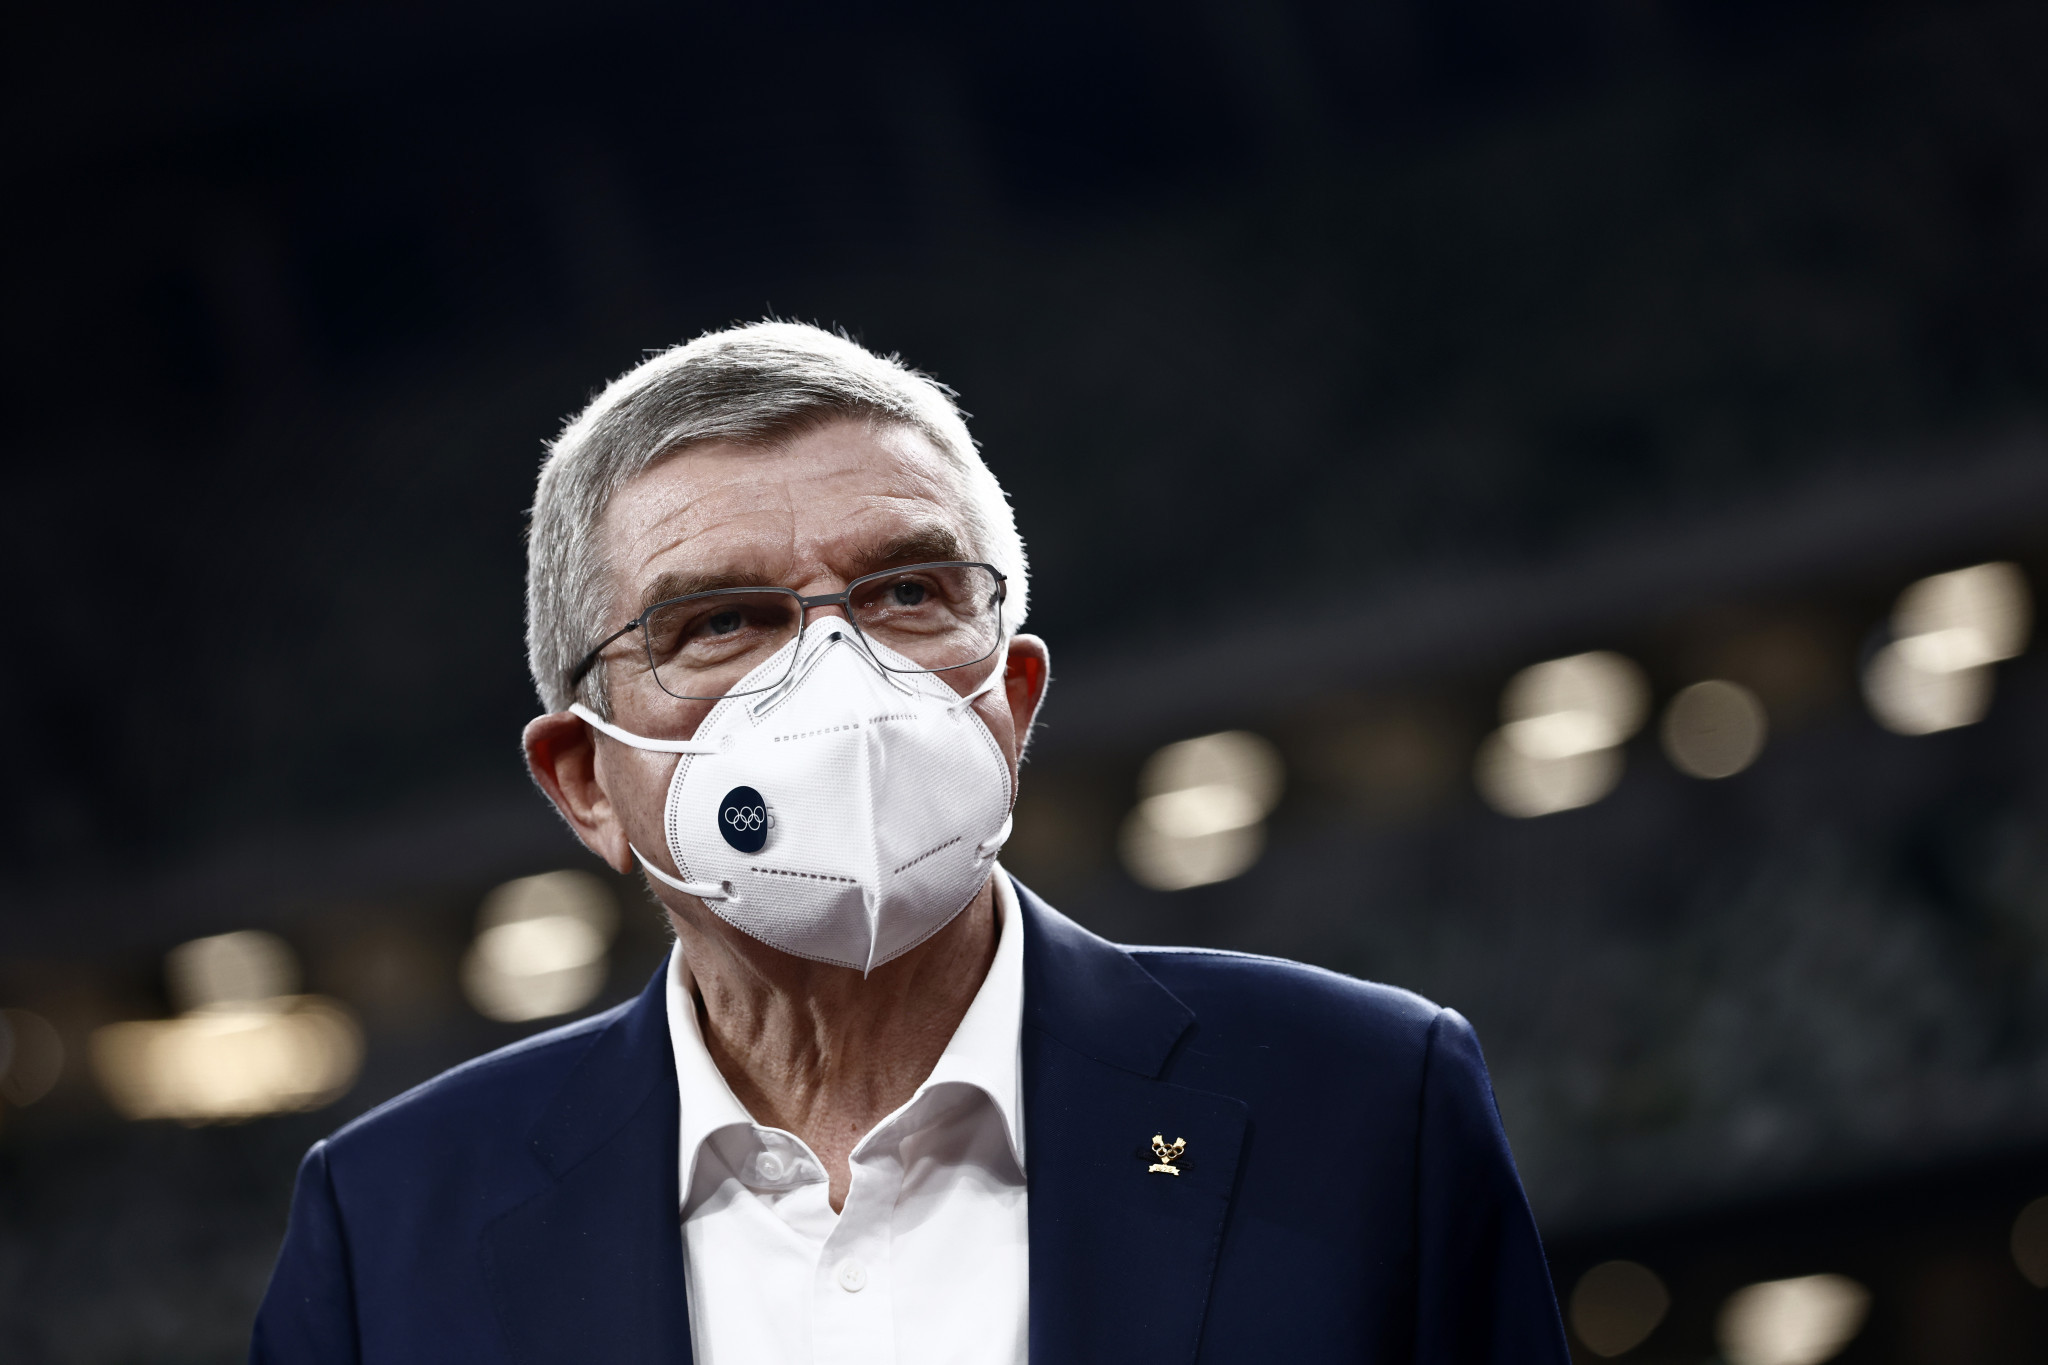 Thomas Bach is expected to return to Japan in May ©Getty Images